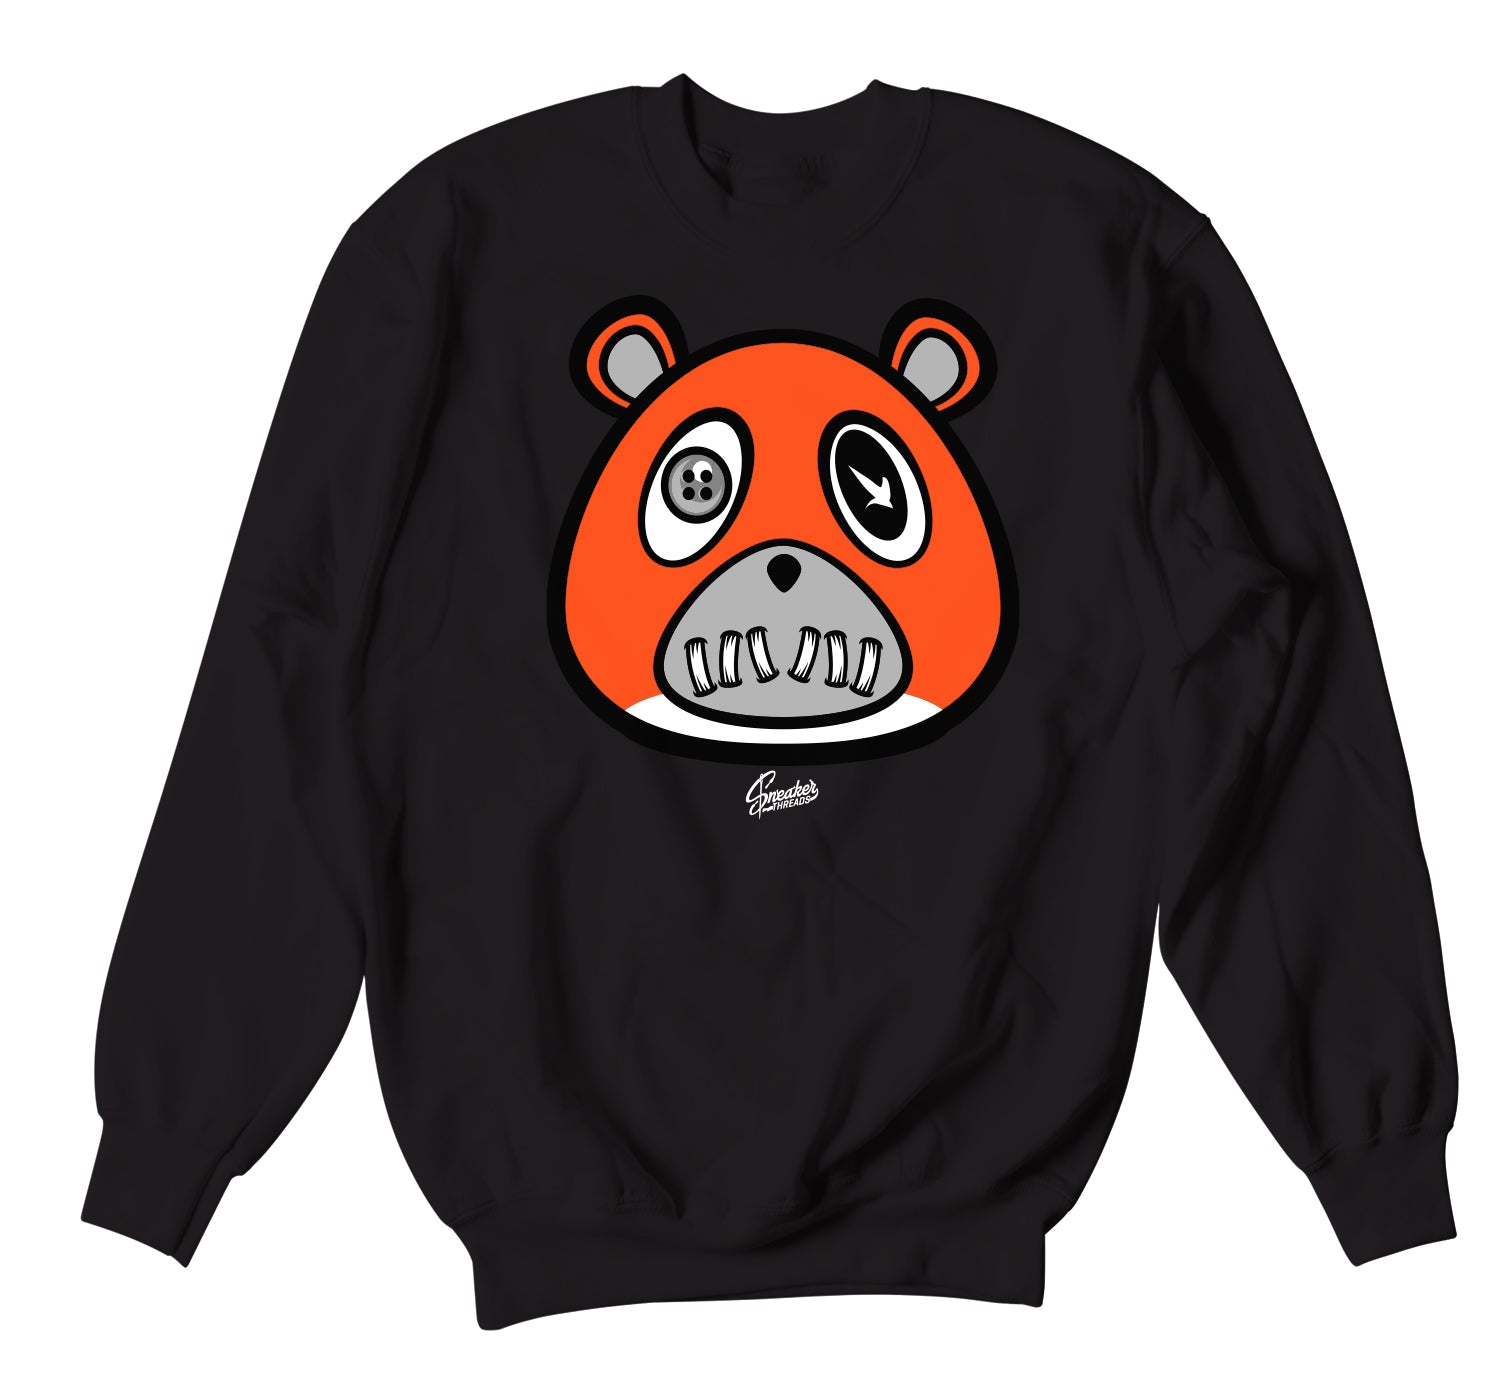 Foamposite Pro Halloween Sweater - ST Bear - Black